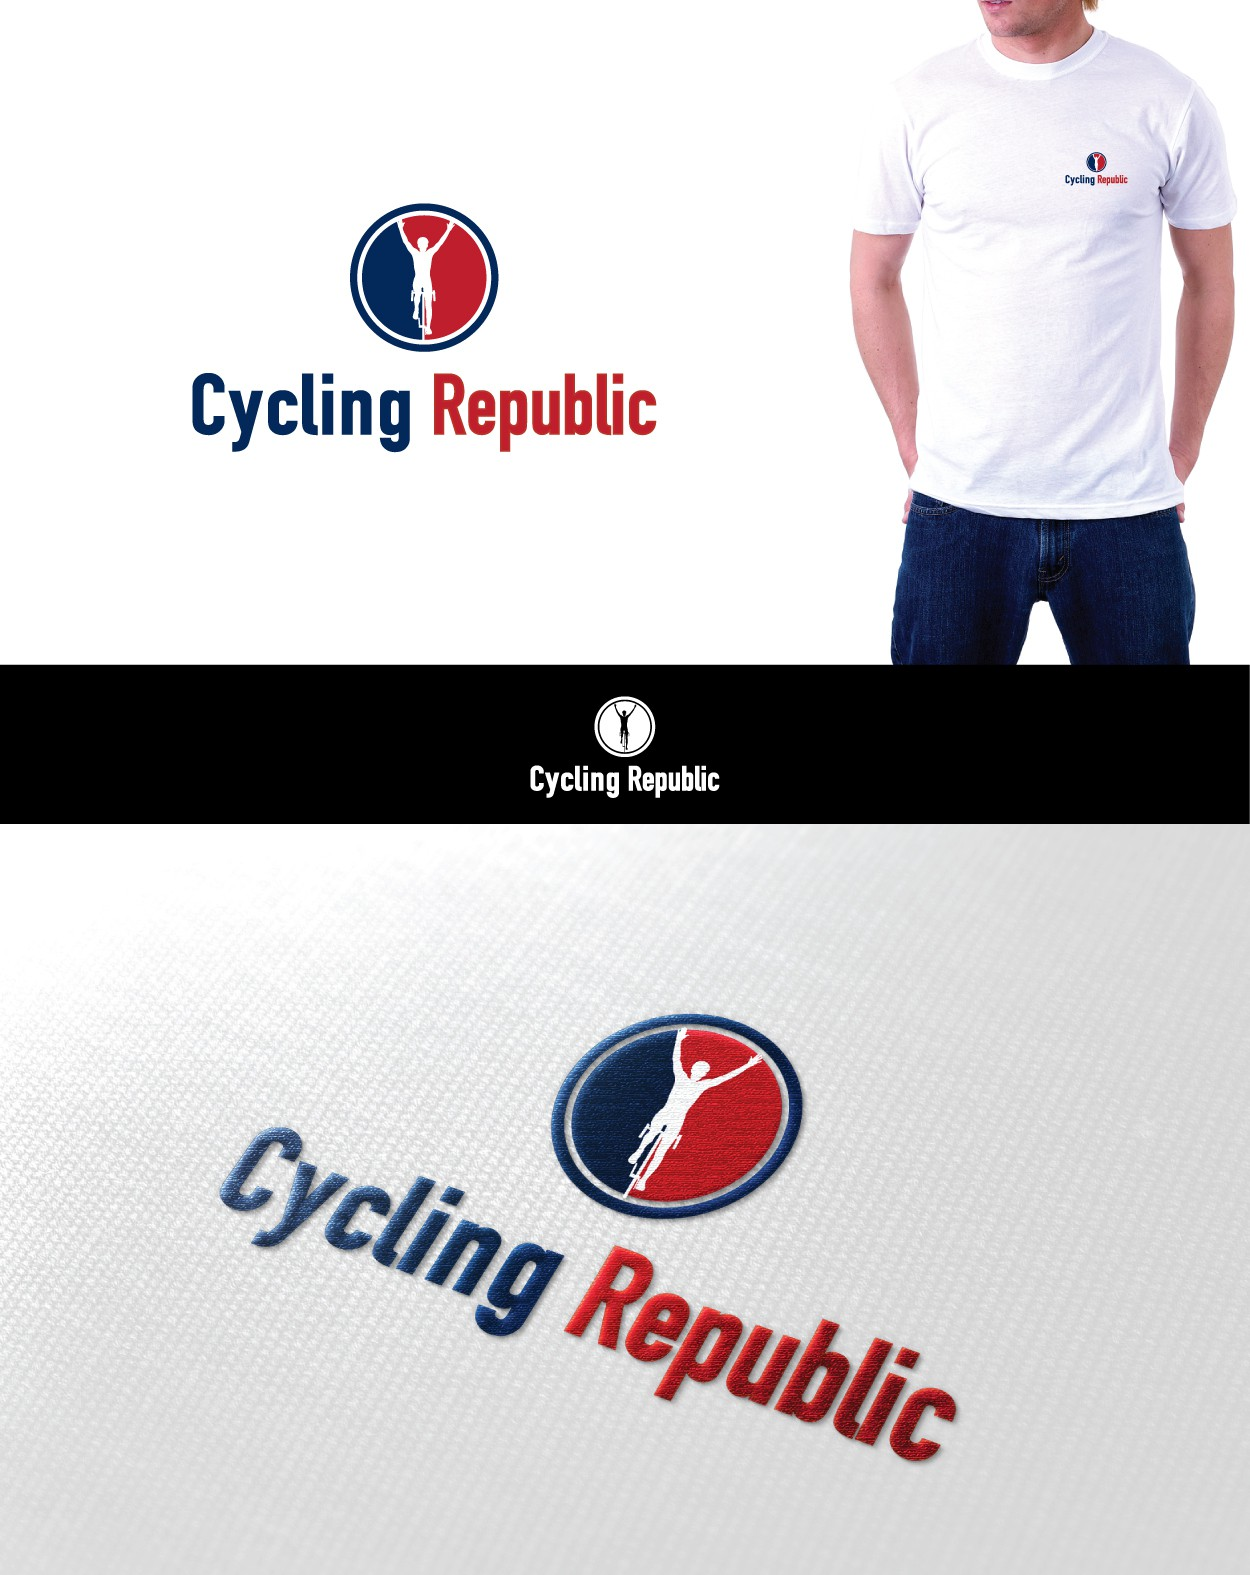 New logo wanted for Republic of Cycling